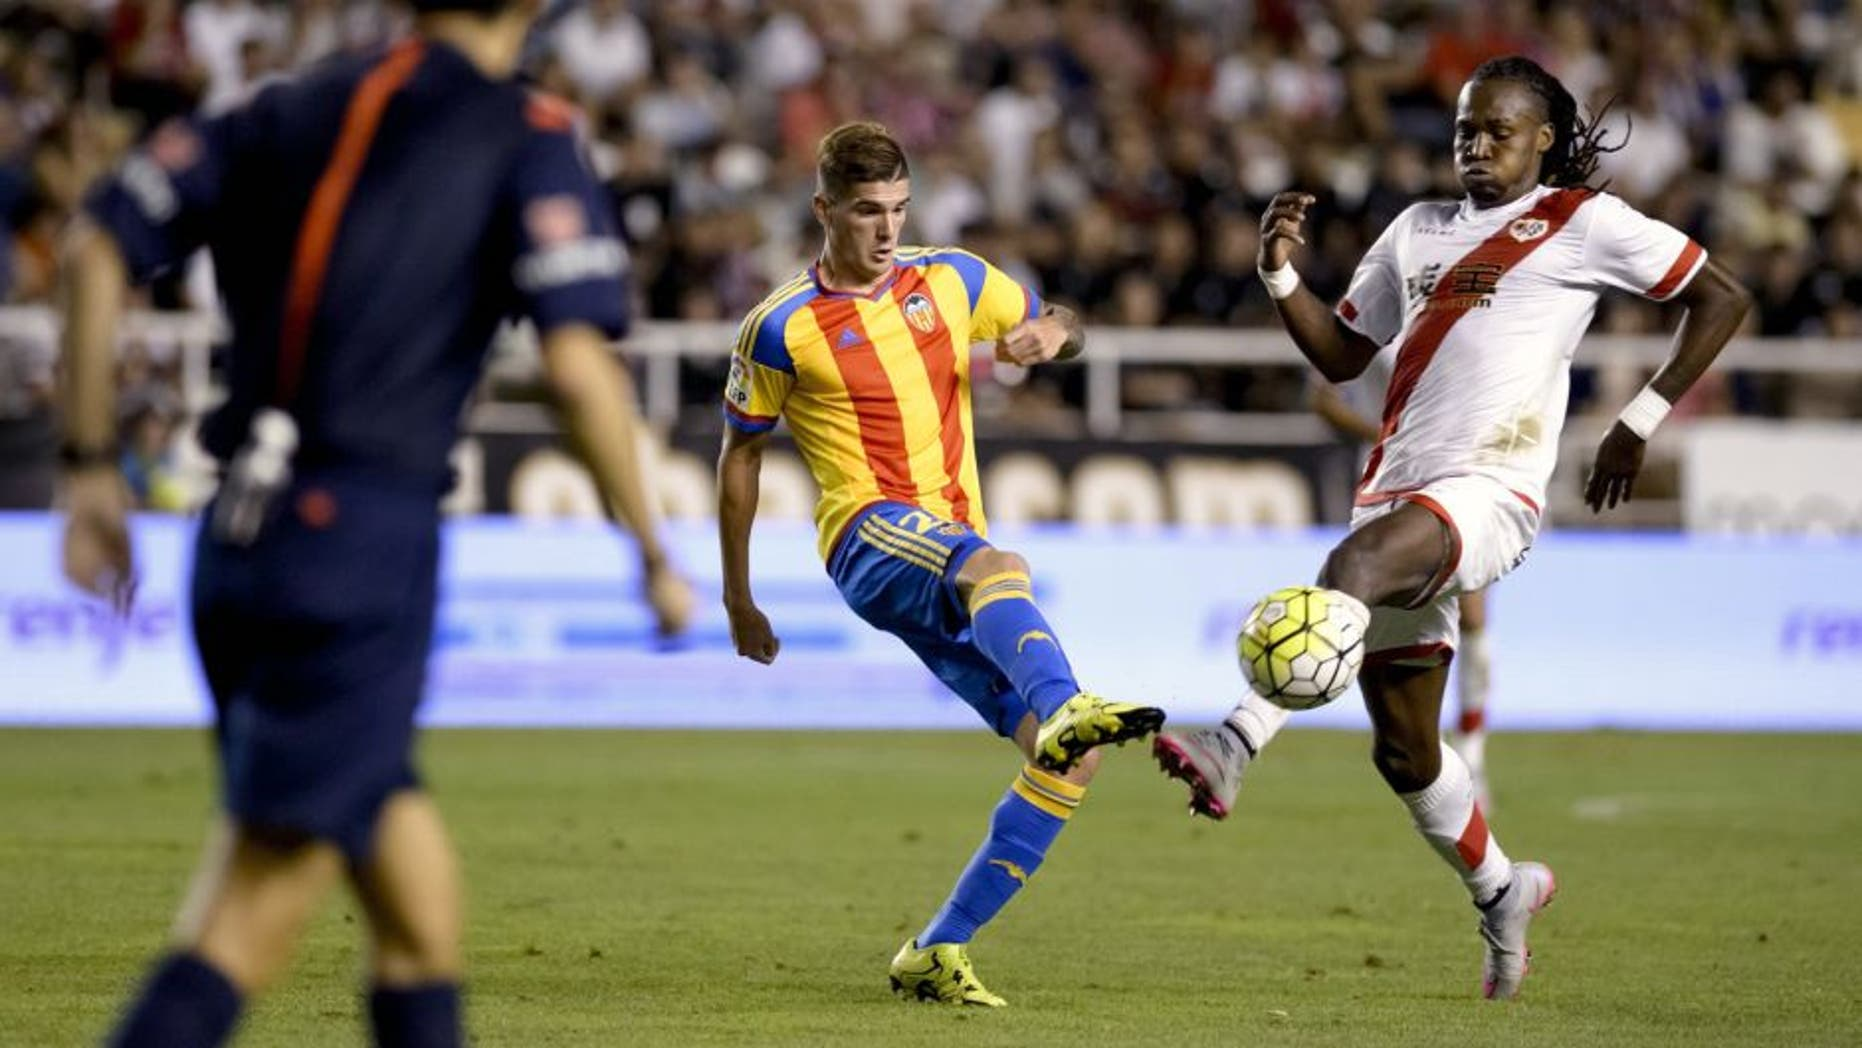 Valencia's Argentinian forward Rodrigo de Paul (L) vies with Rayo's Angolan forward Manucho during the Spanish league football match Rayo Vallecano de Madrid vs Valencia CF at Vallecas stadium in Madrid, on August 22, 2015. AFP PHOTO/ DANI POZO (Photo credit should read DANI POZO/AFP/Getty Images)